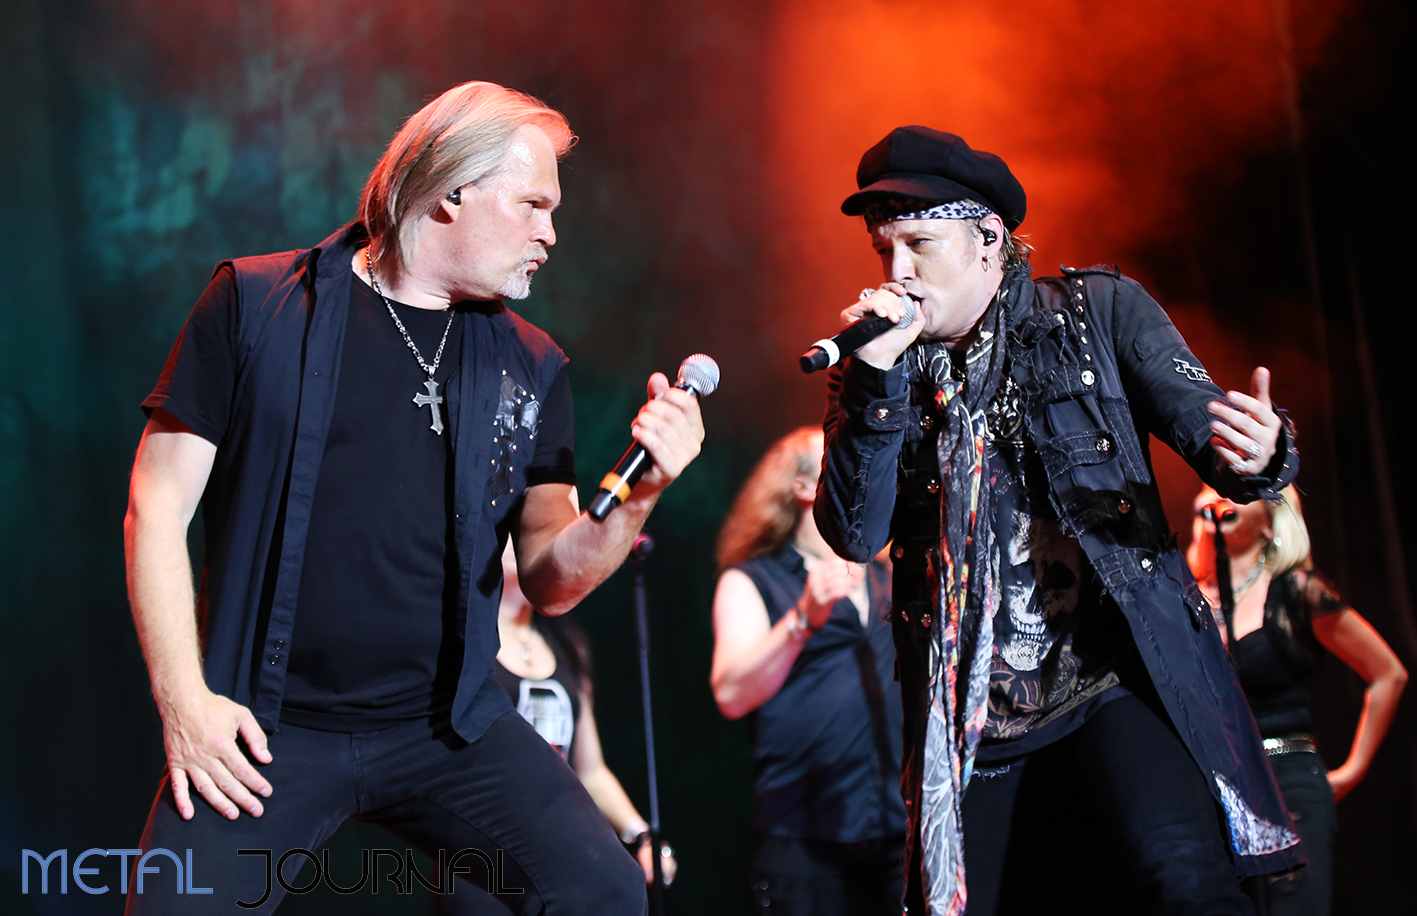 avantasia- leyendas del rock 2019 metal journal pic 13